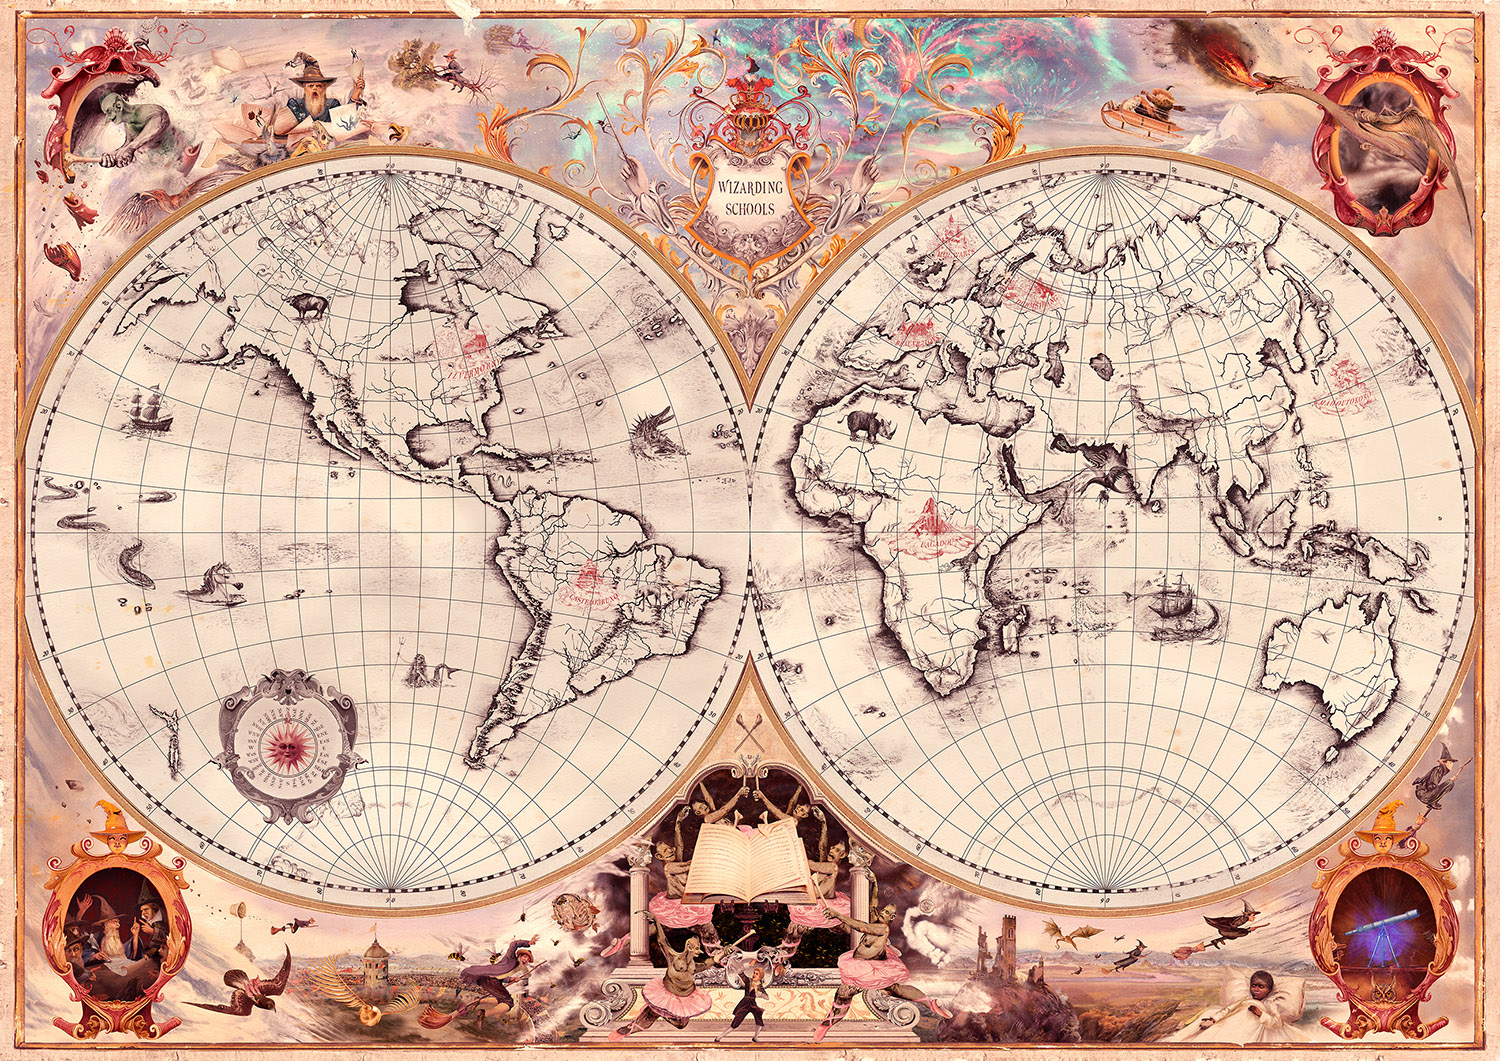 A map of J.K. Rowling's Wizarding World